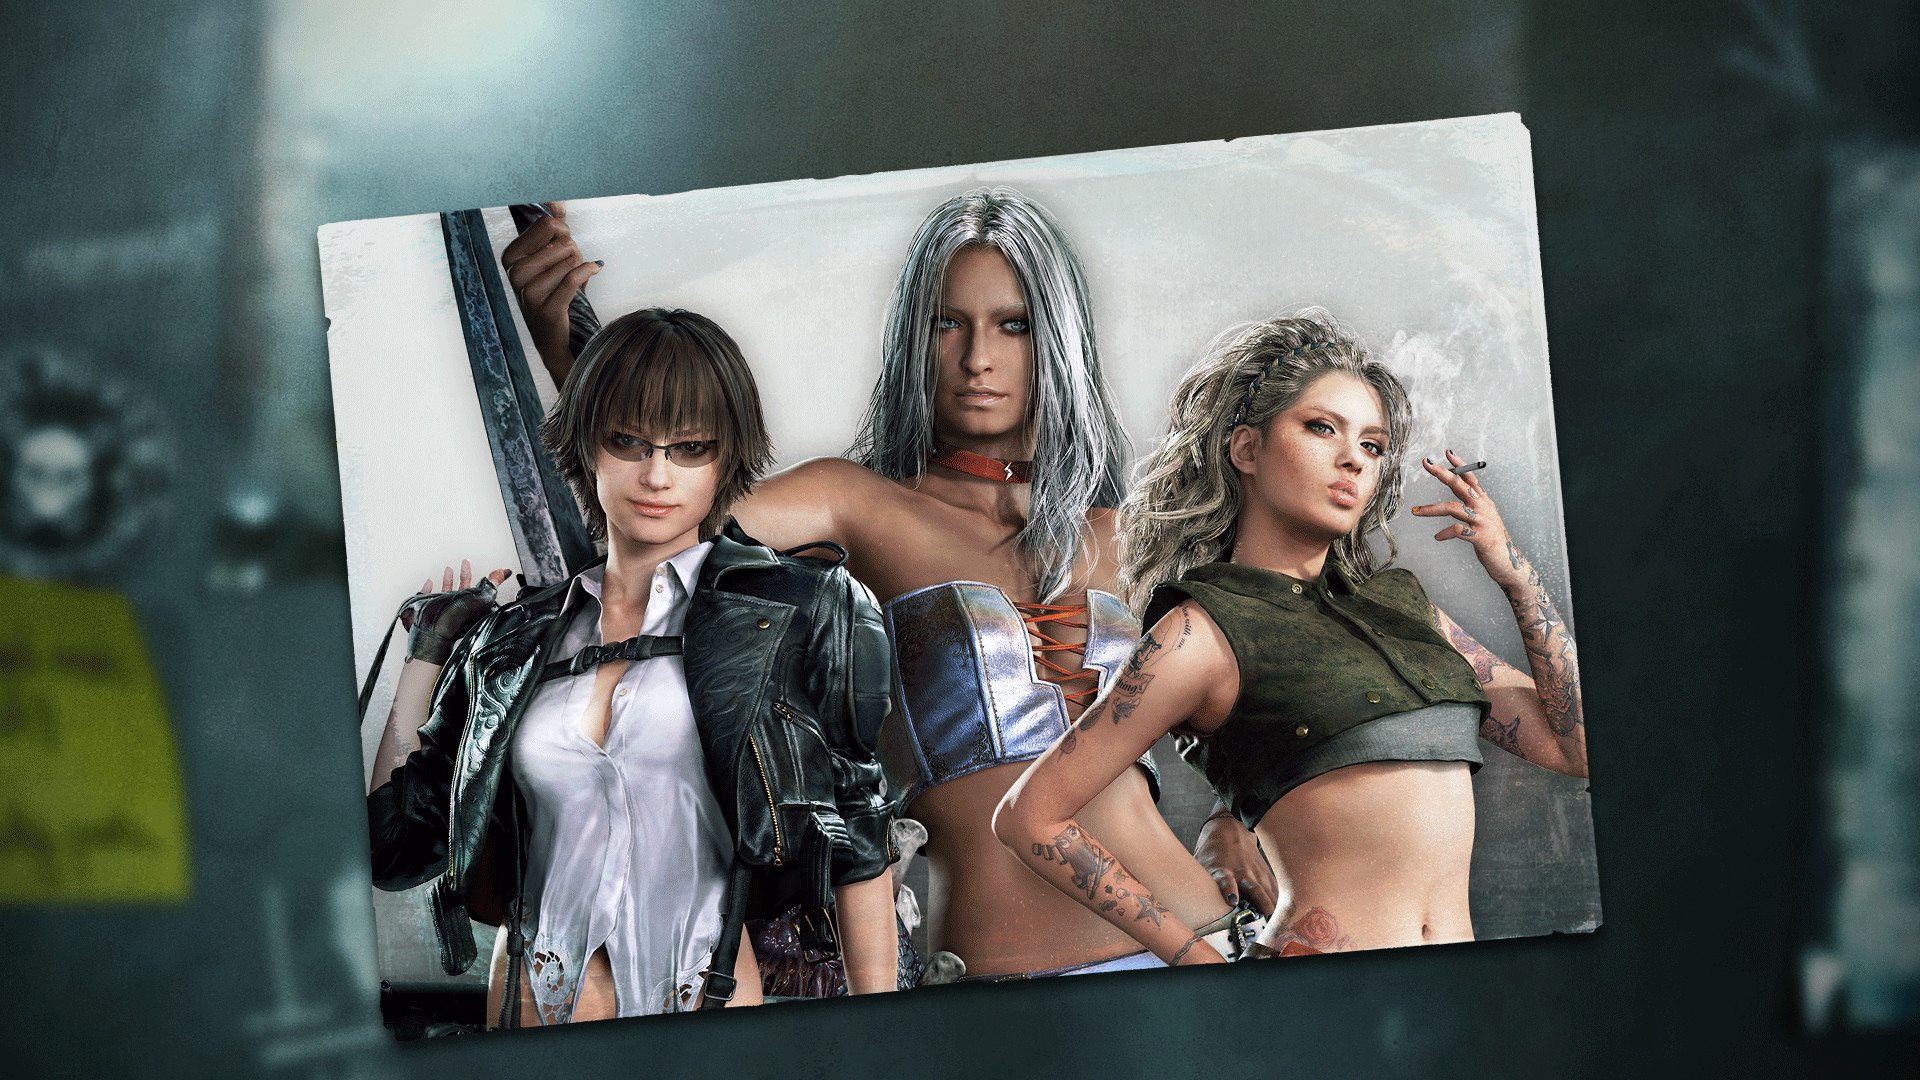 Devil May Cry 5 Alt Heroine Colors On Steam